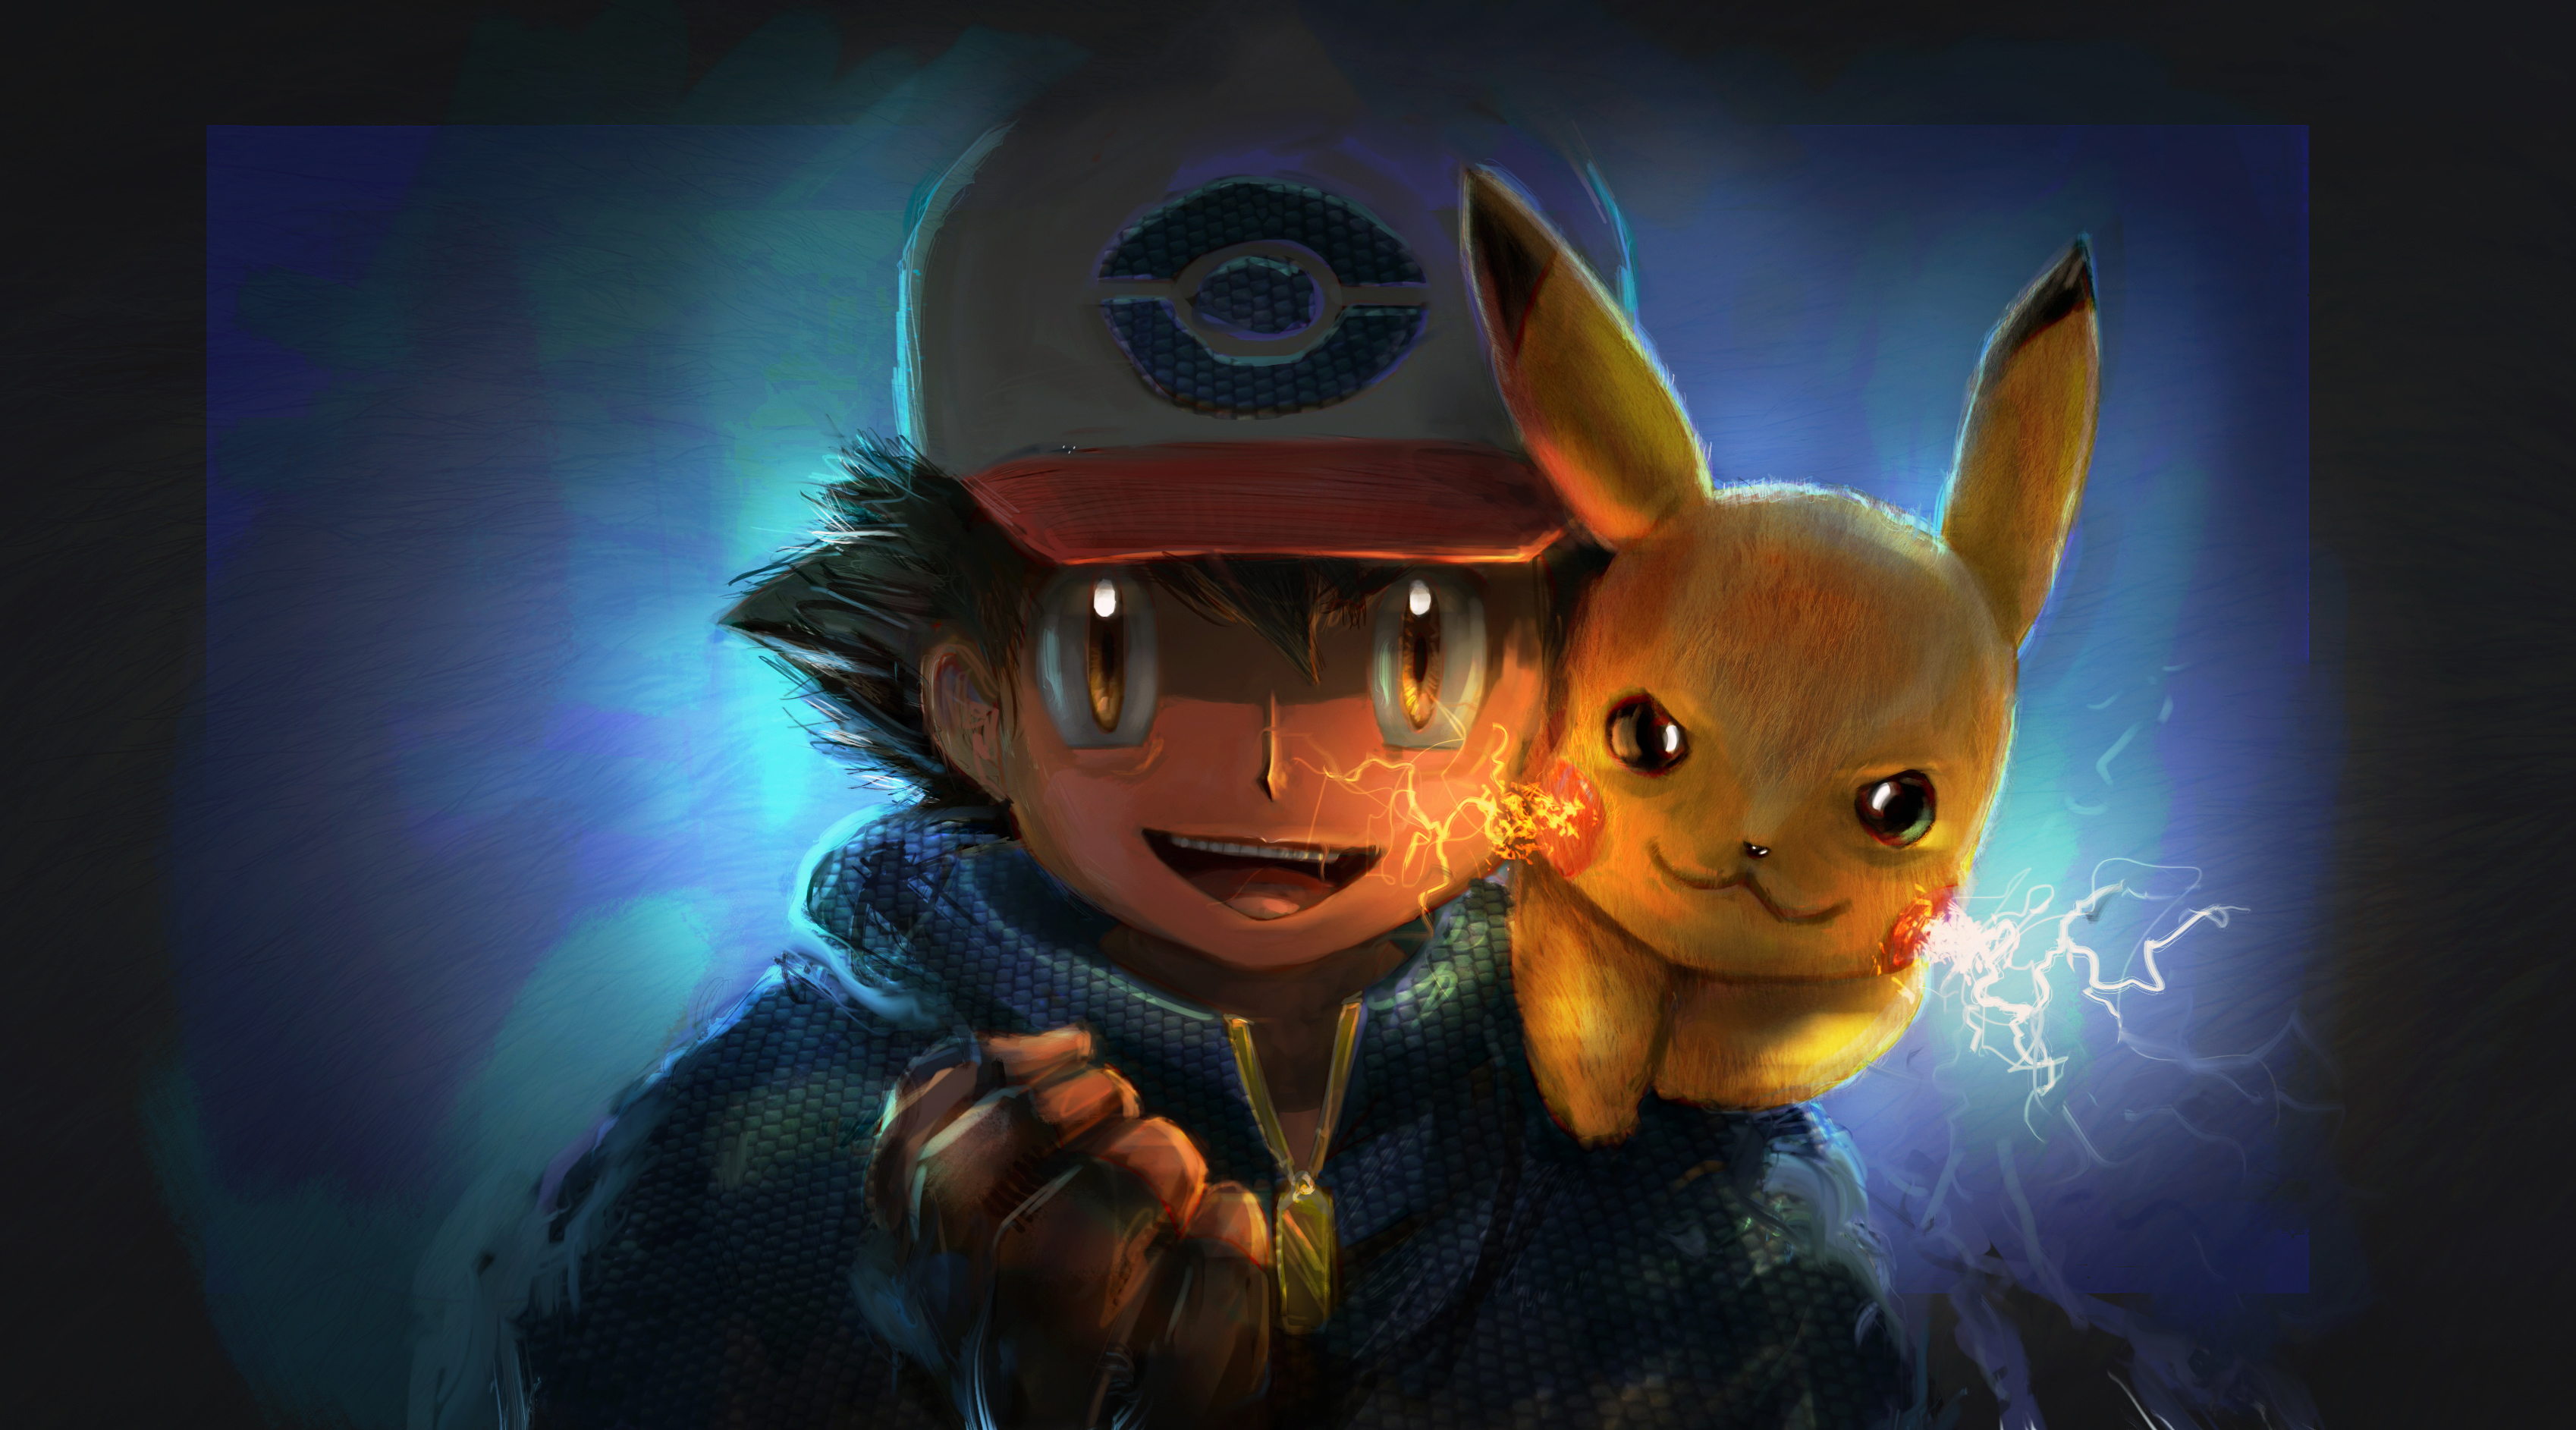 800x1280 Wallpaper Hd Ash And Pikachu Artwork Hd Anime 4k Wallpapers Images